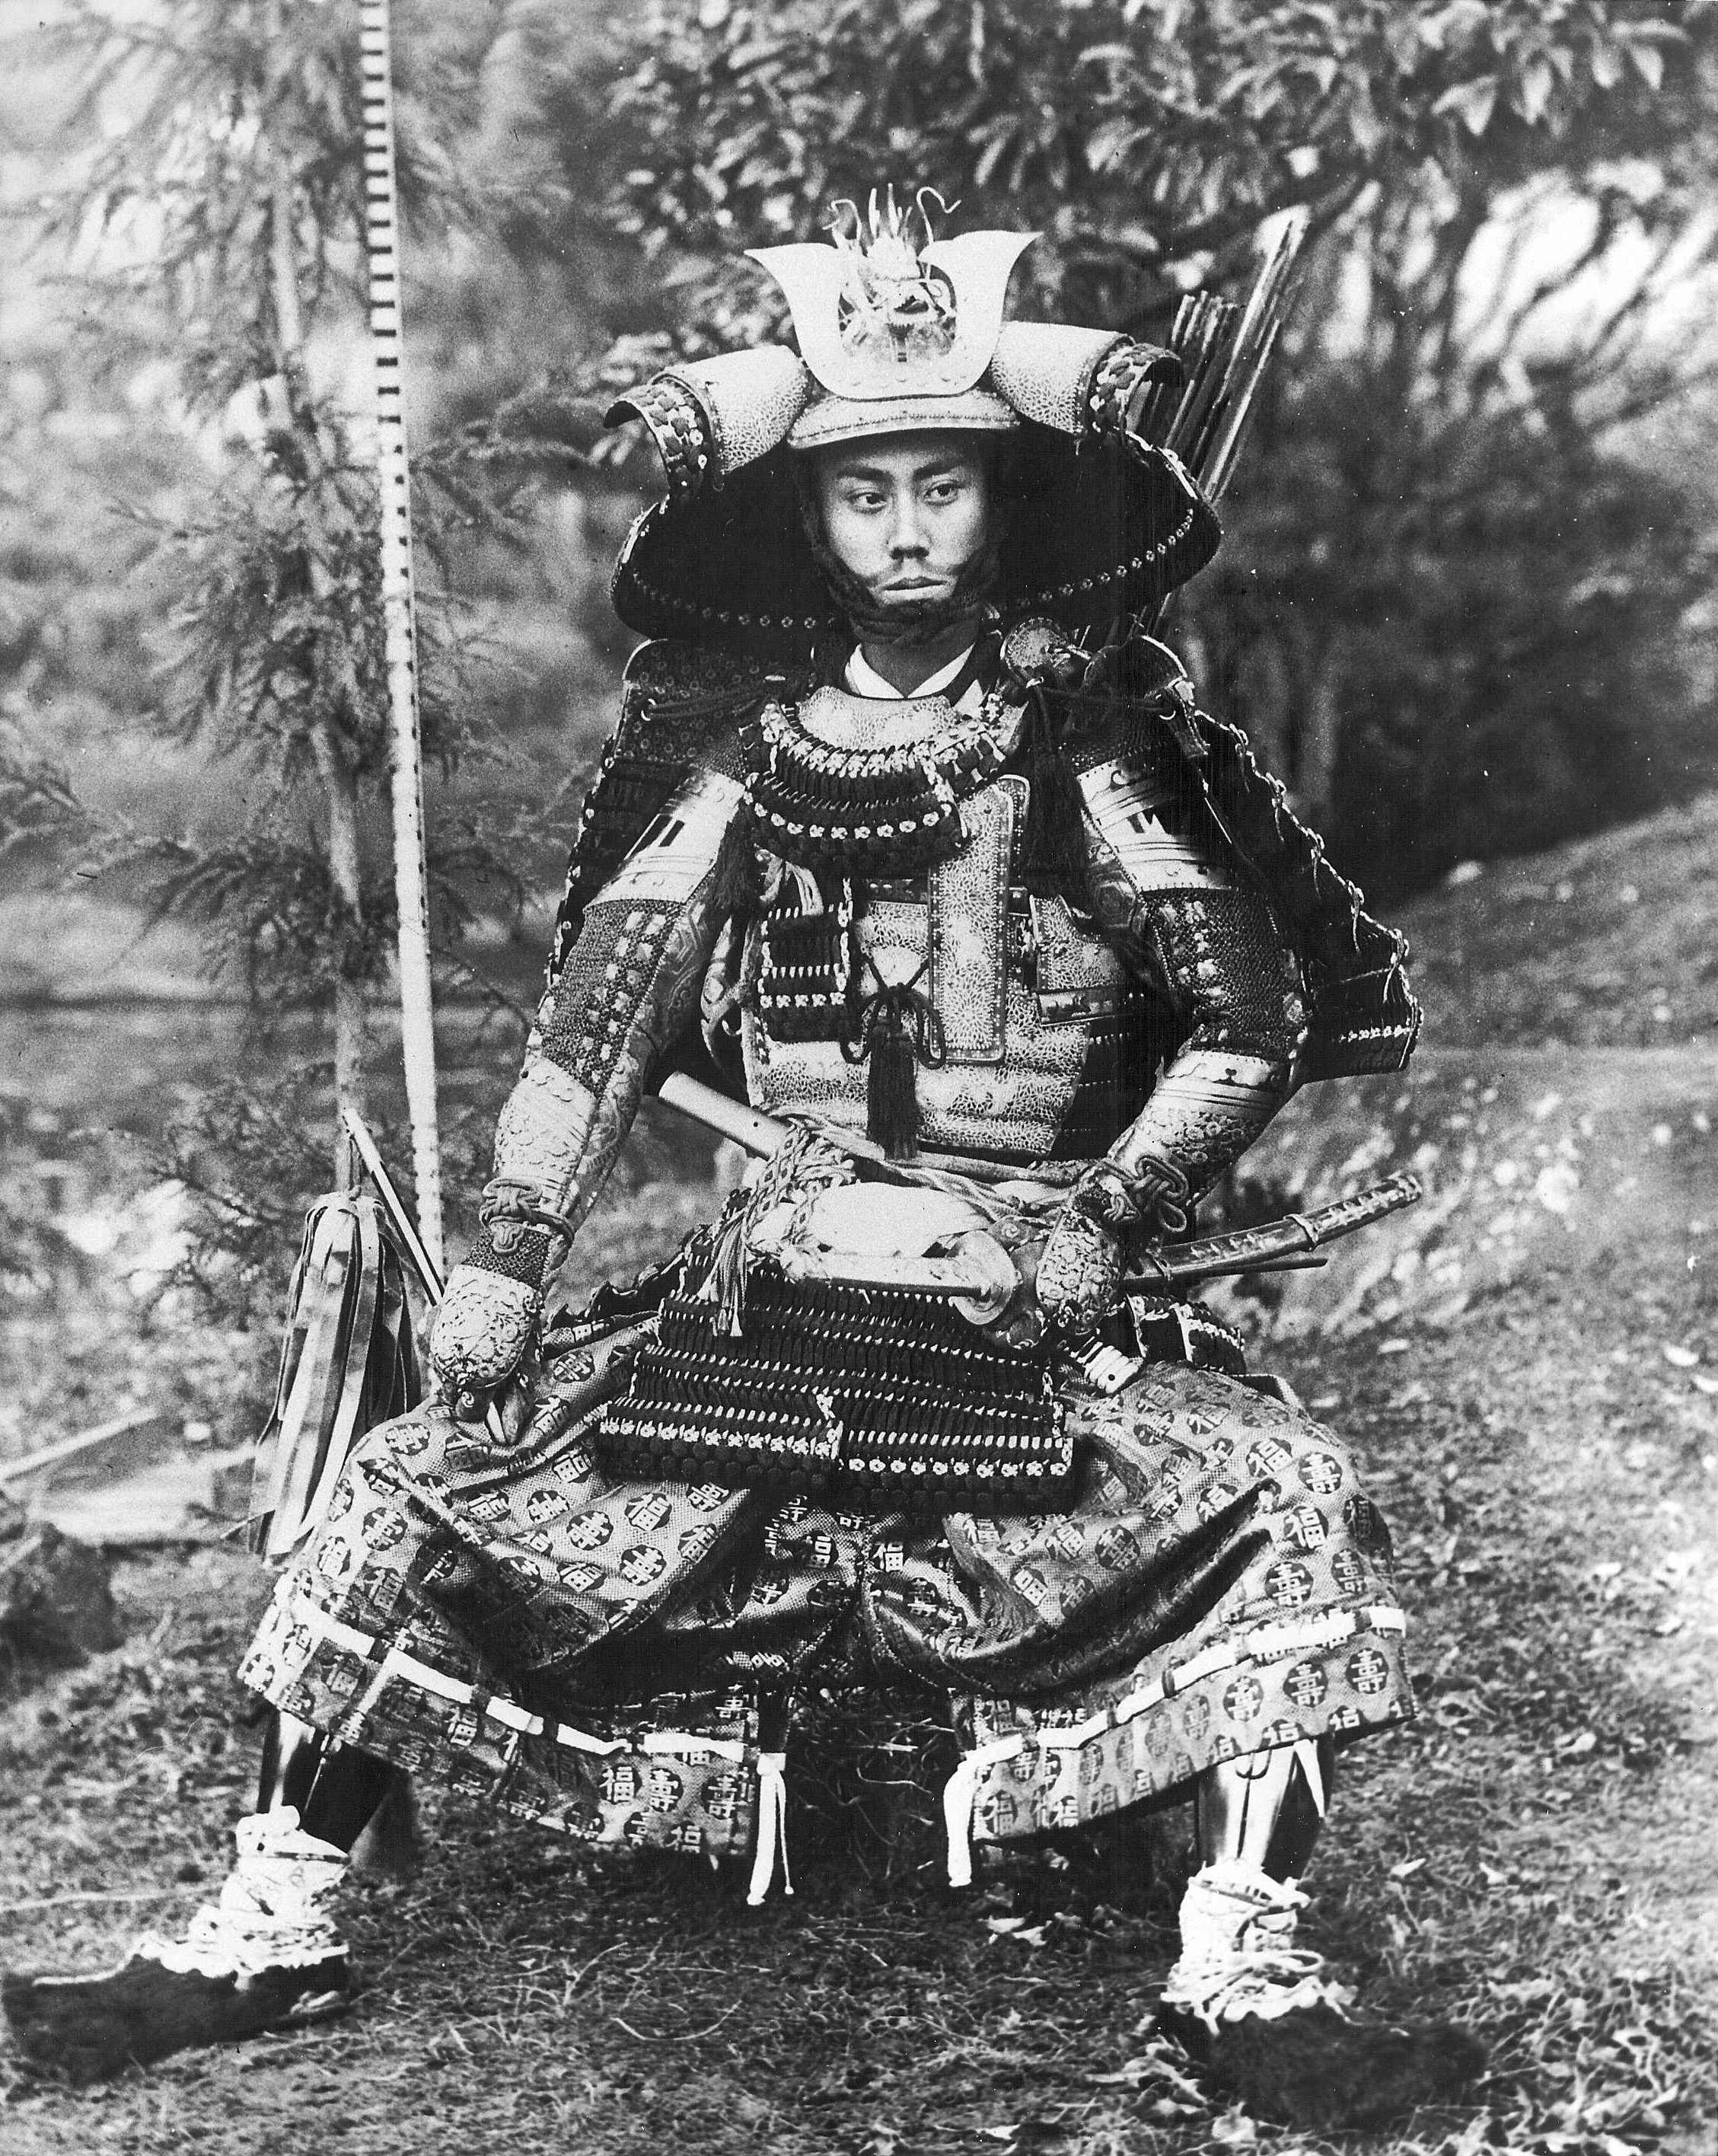 IMAGES OF OLD JAPANESE ARMOR | old styles